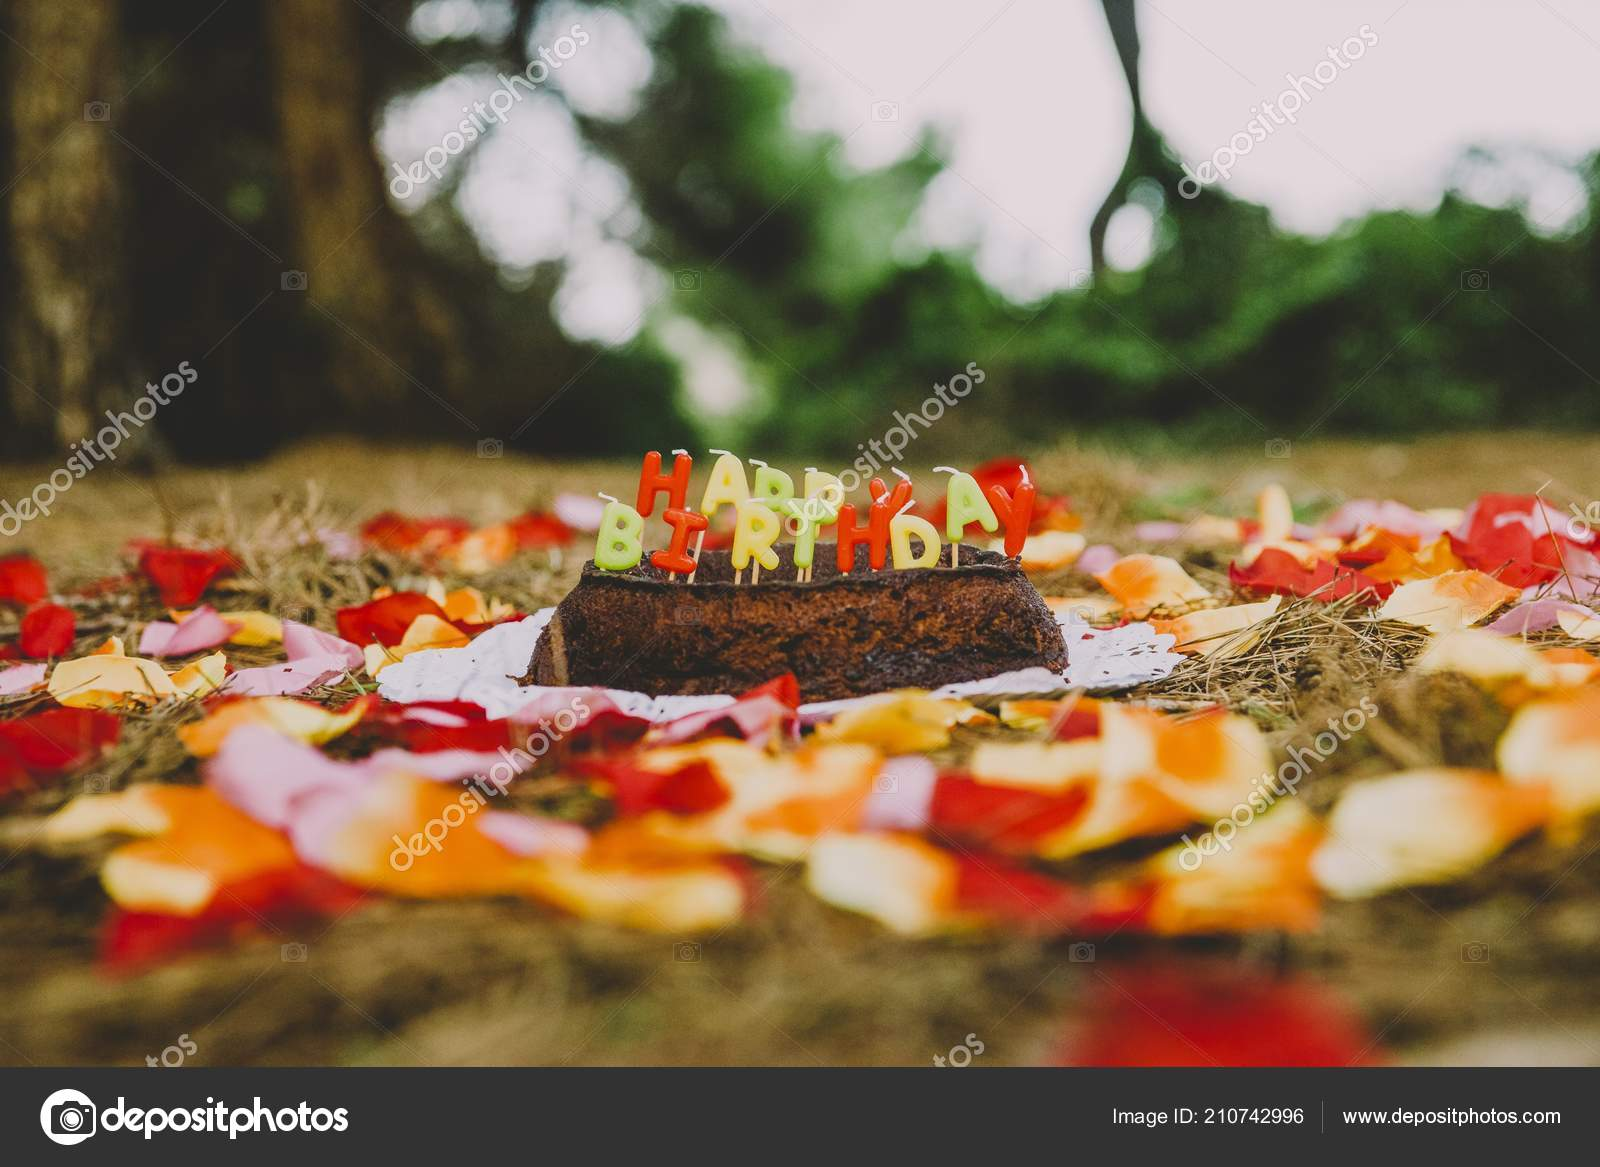 Pleasing Happy Birthday Cake Letters Candles Forest Stock Photo Birthday Cards Printable Riciscafe Filternl